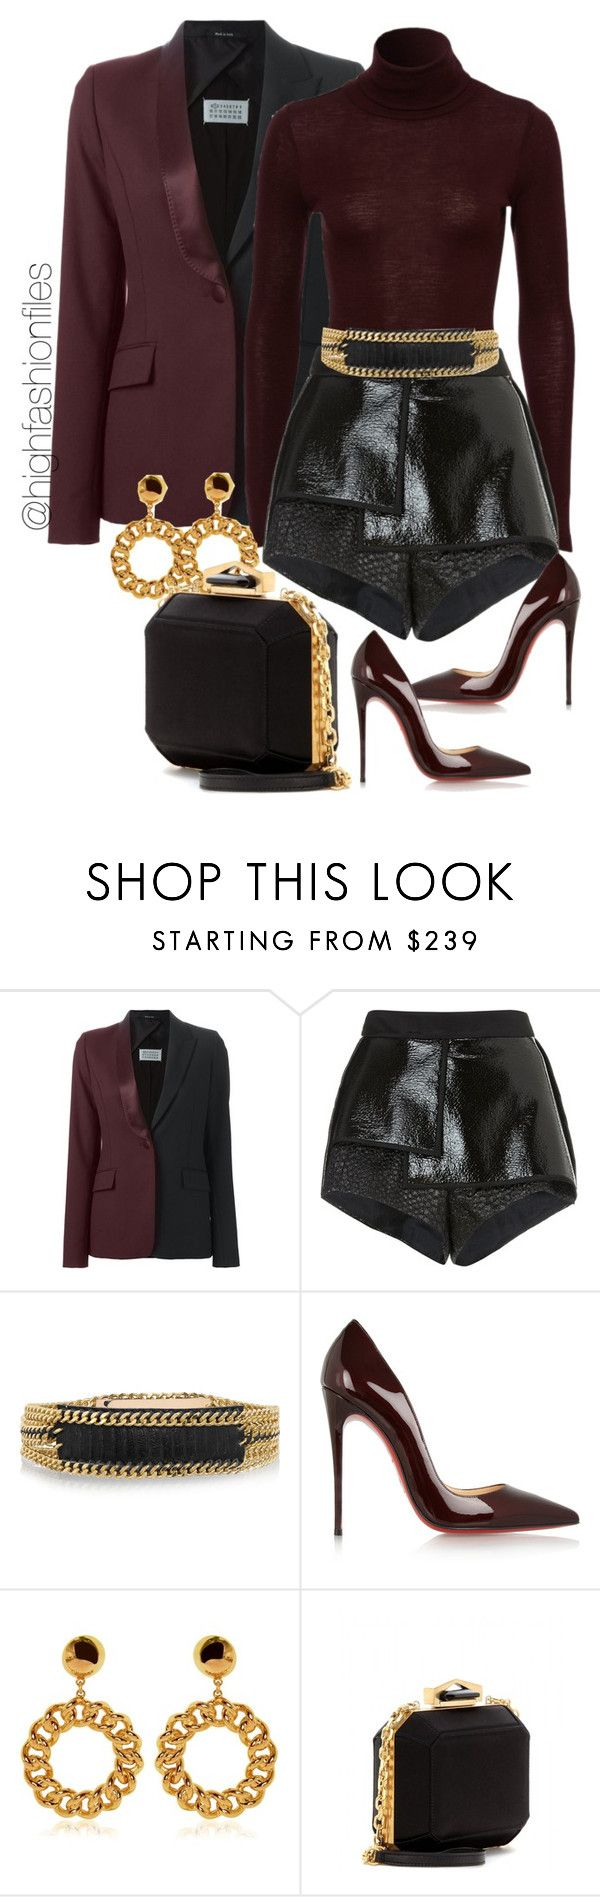 """""""Switching Up"""" by highfashionfiles ❤ liked on Polyvore featuring Maison Margiela, E L L E R Y, Balmain, Christian Louboutin, Moschino and Alexander McQueen"""